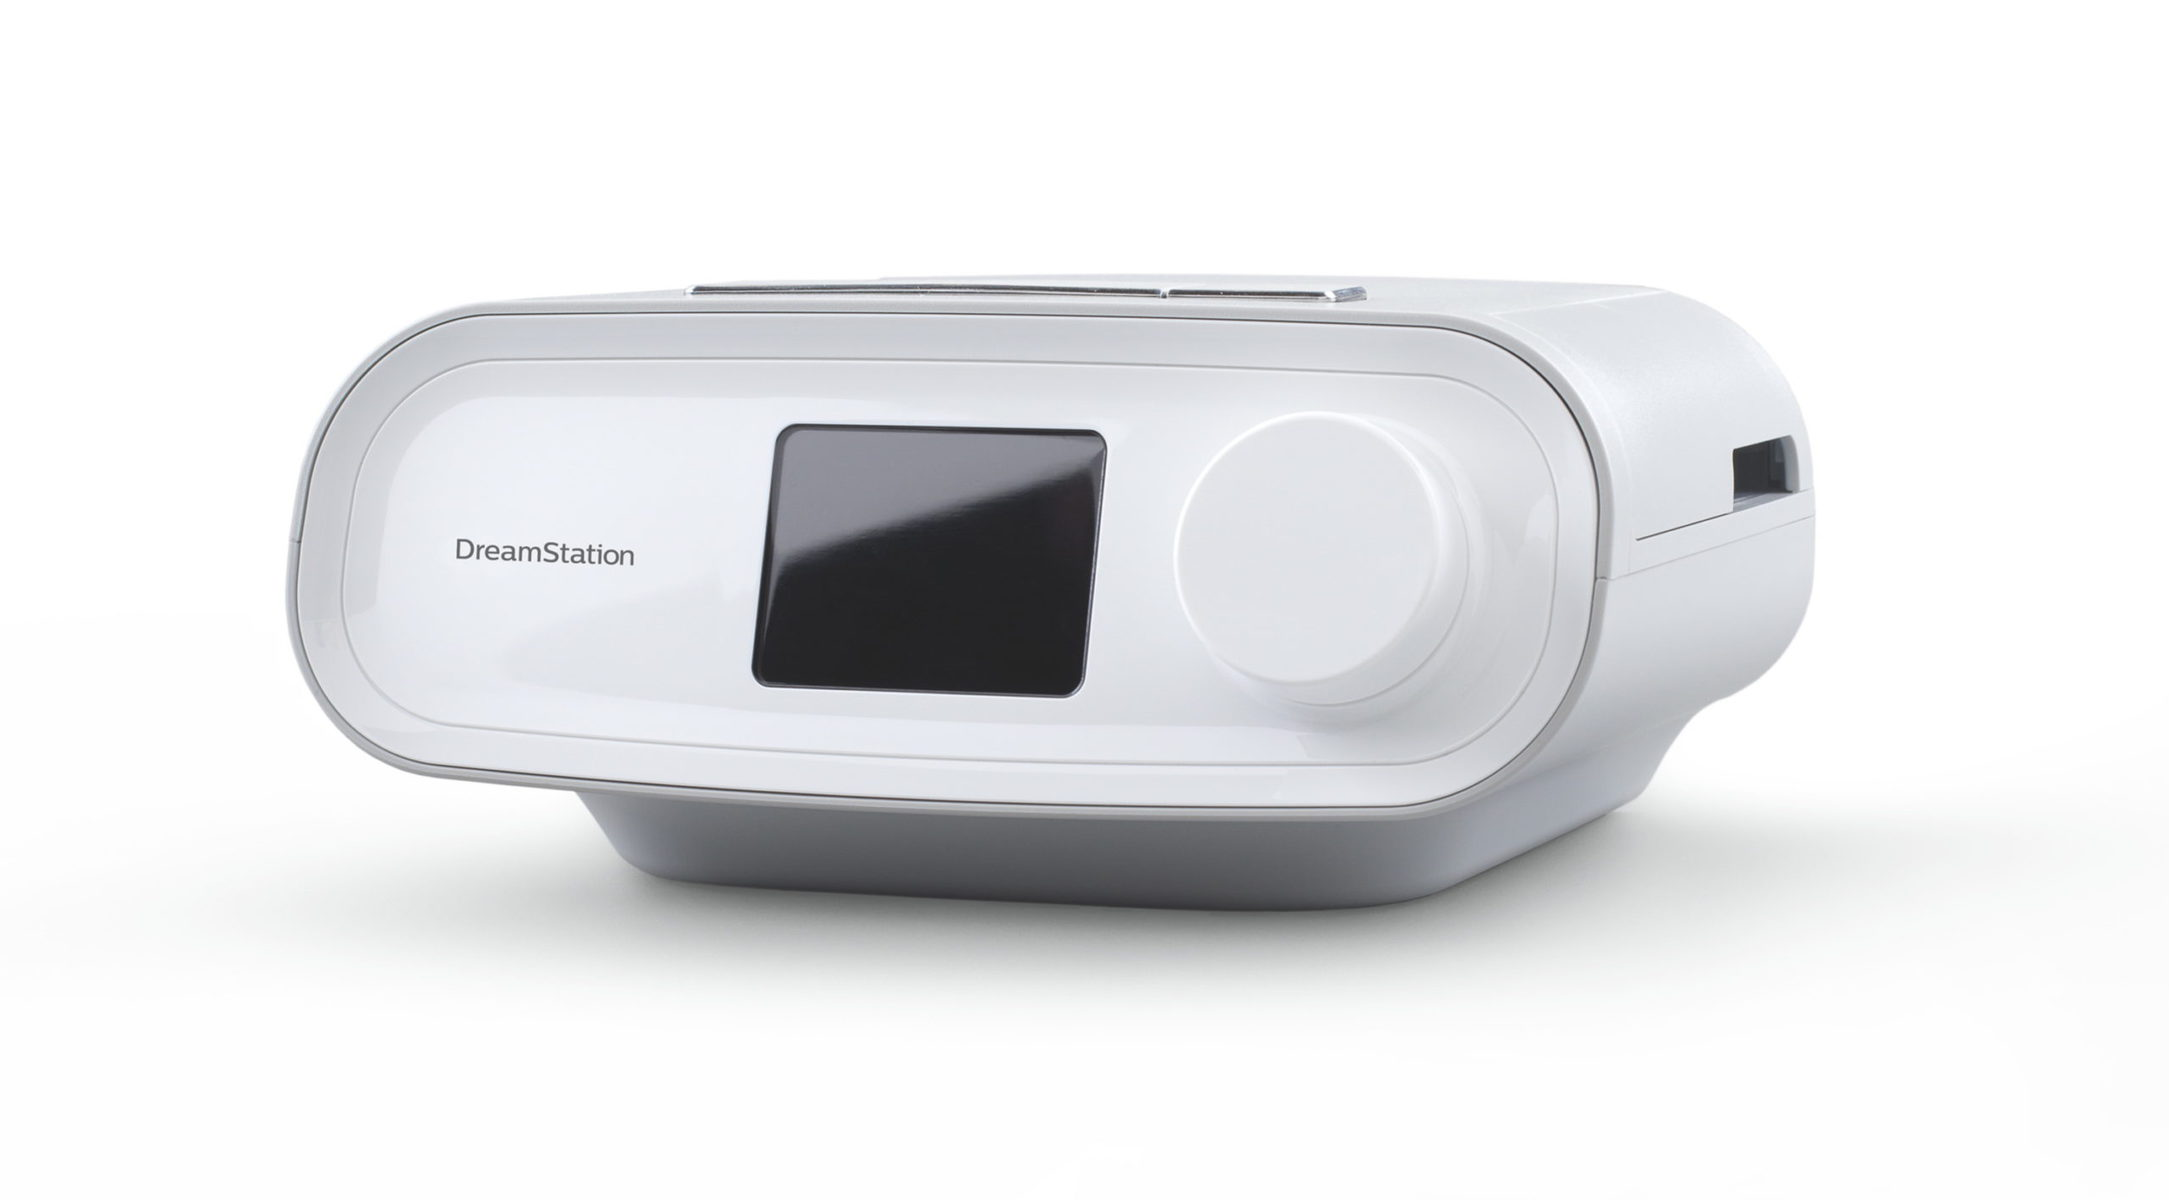 DreamStation Auto CPAP angled